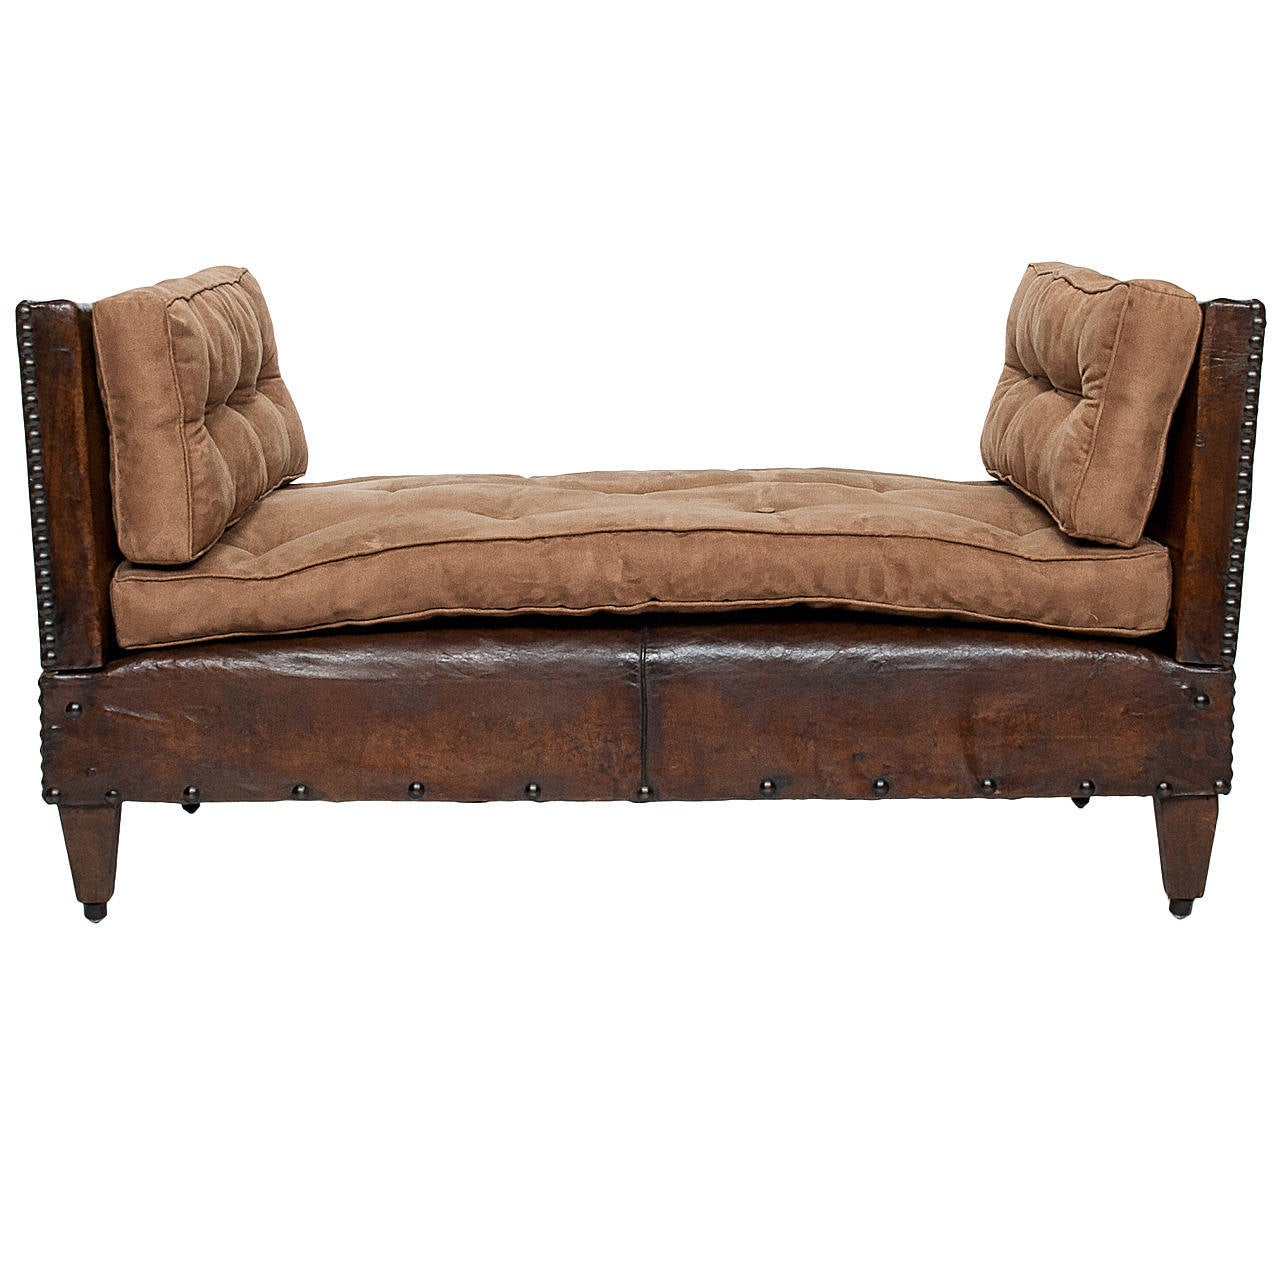 French adjustable daybed at 1stdibs for Arts and crafts daybed